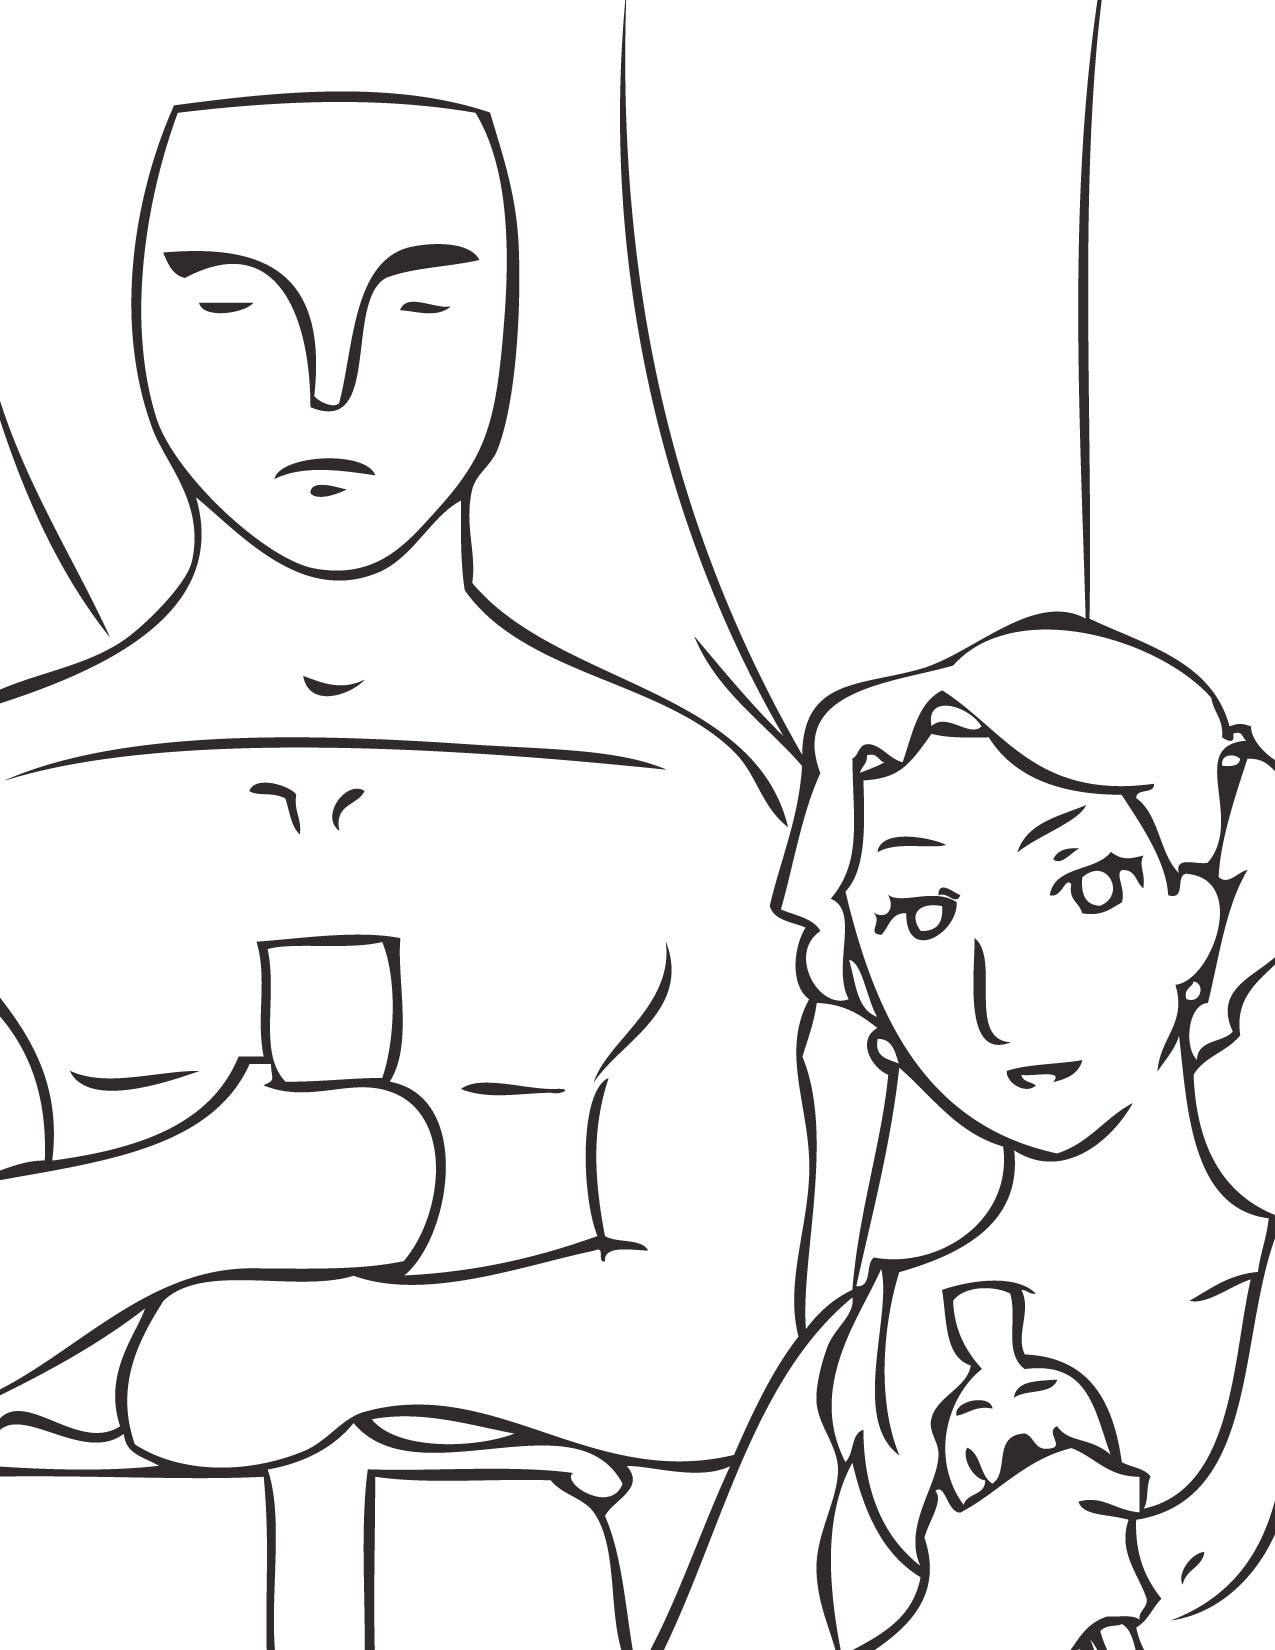 Uncategorized Oscar Coloring Pages academy awards oscars coloring pages home page